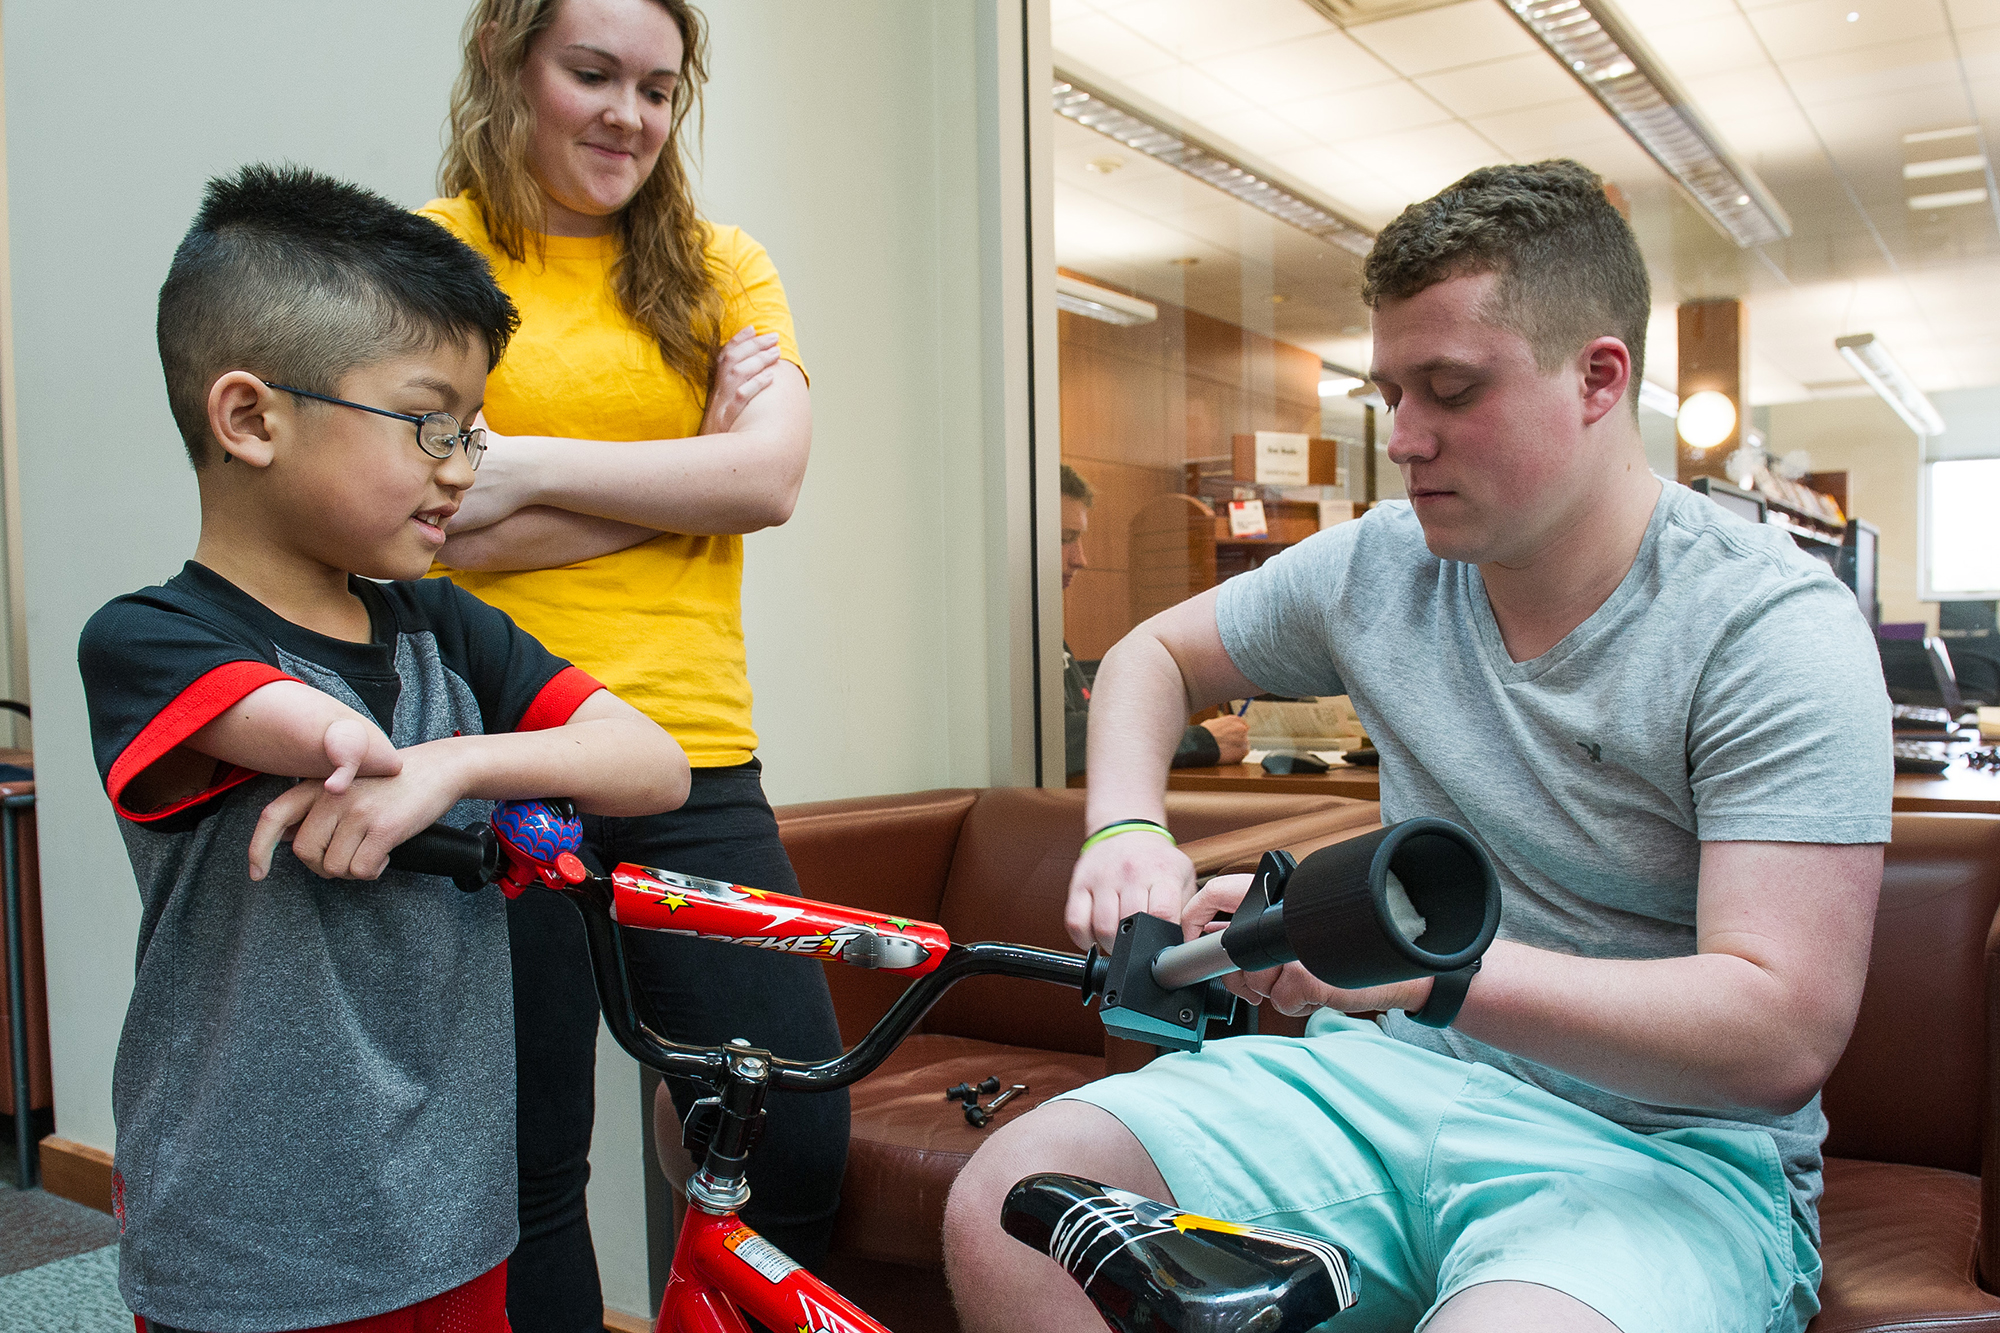 university of iowa engineering students work on device that allows a young boy to ride his bike